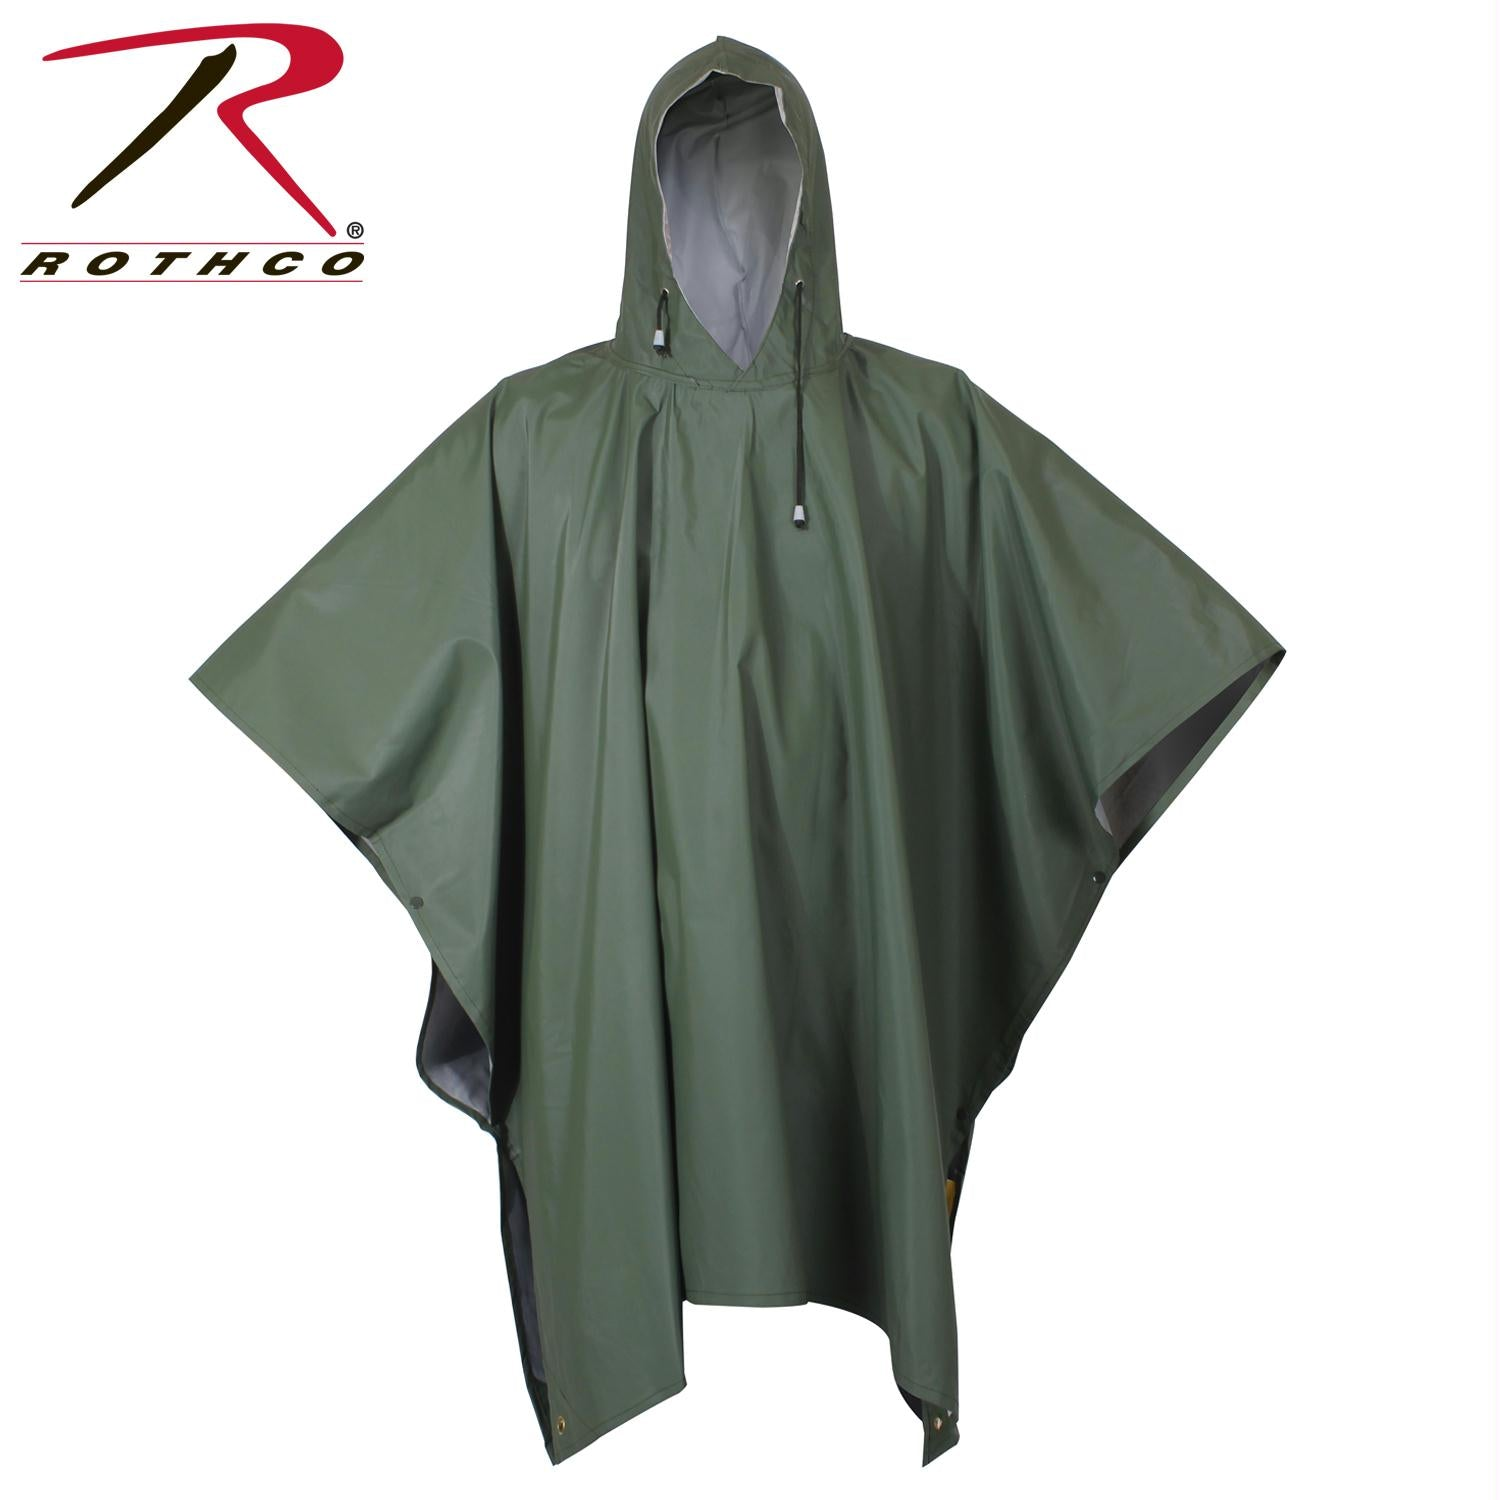 Rothco O.D Rubber Poncho - Olive Drab / One Size